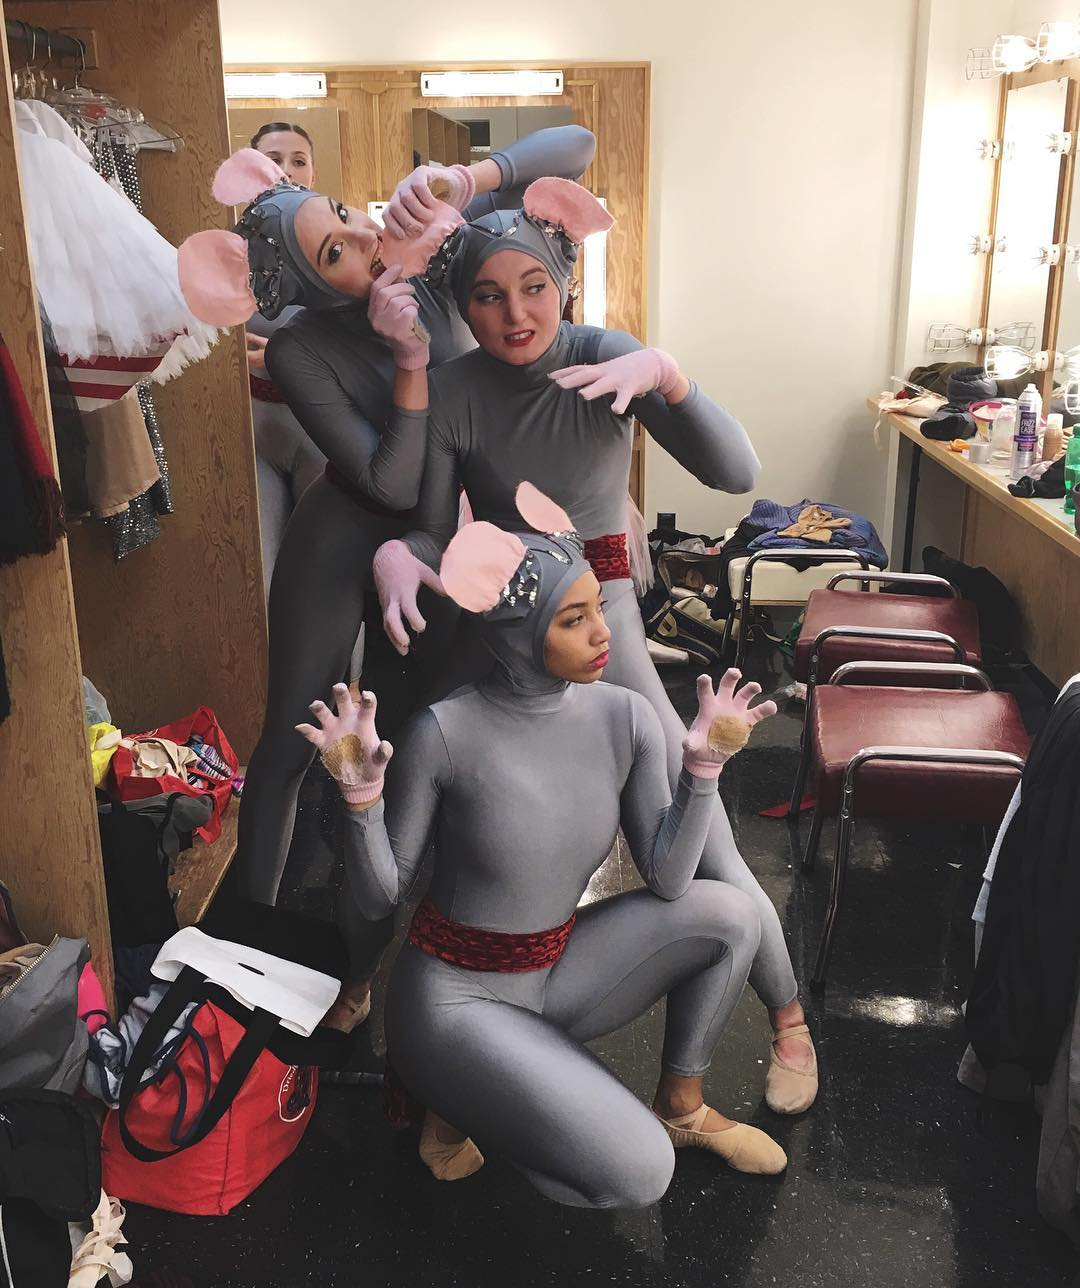 Behind the scenes with some of our mice. Photo by @kierra_kelp